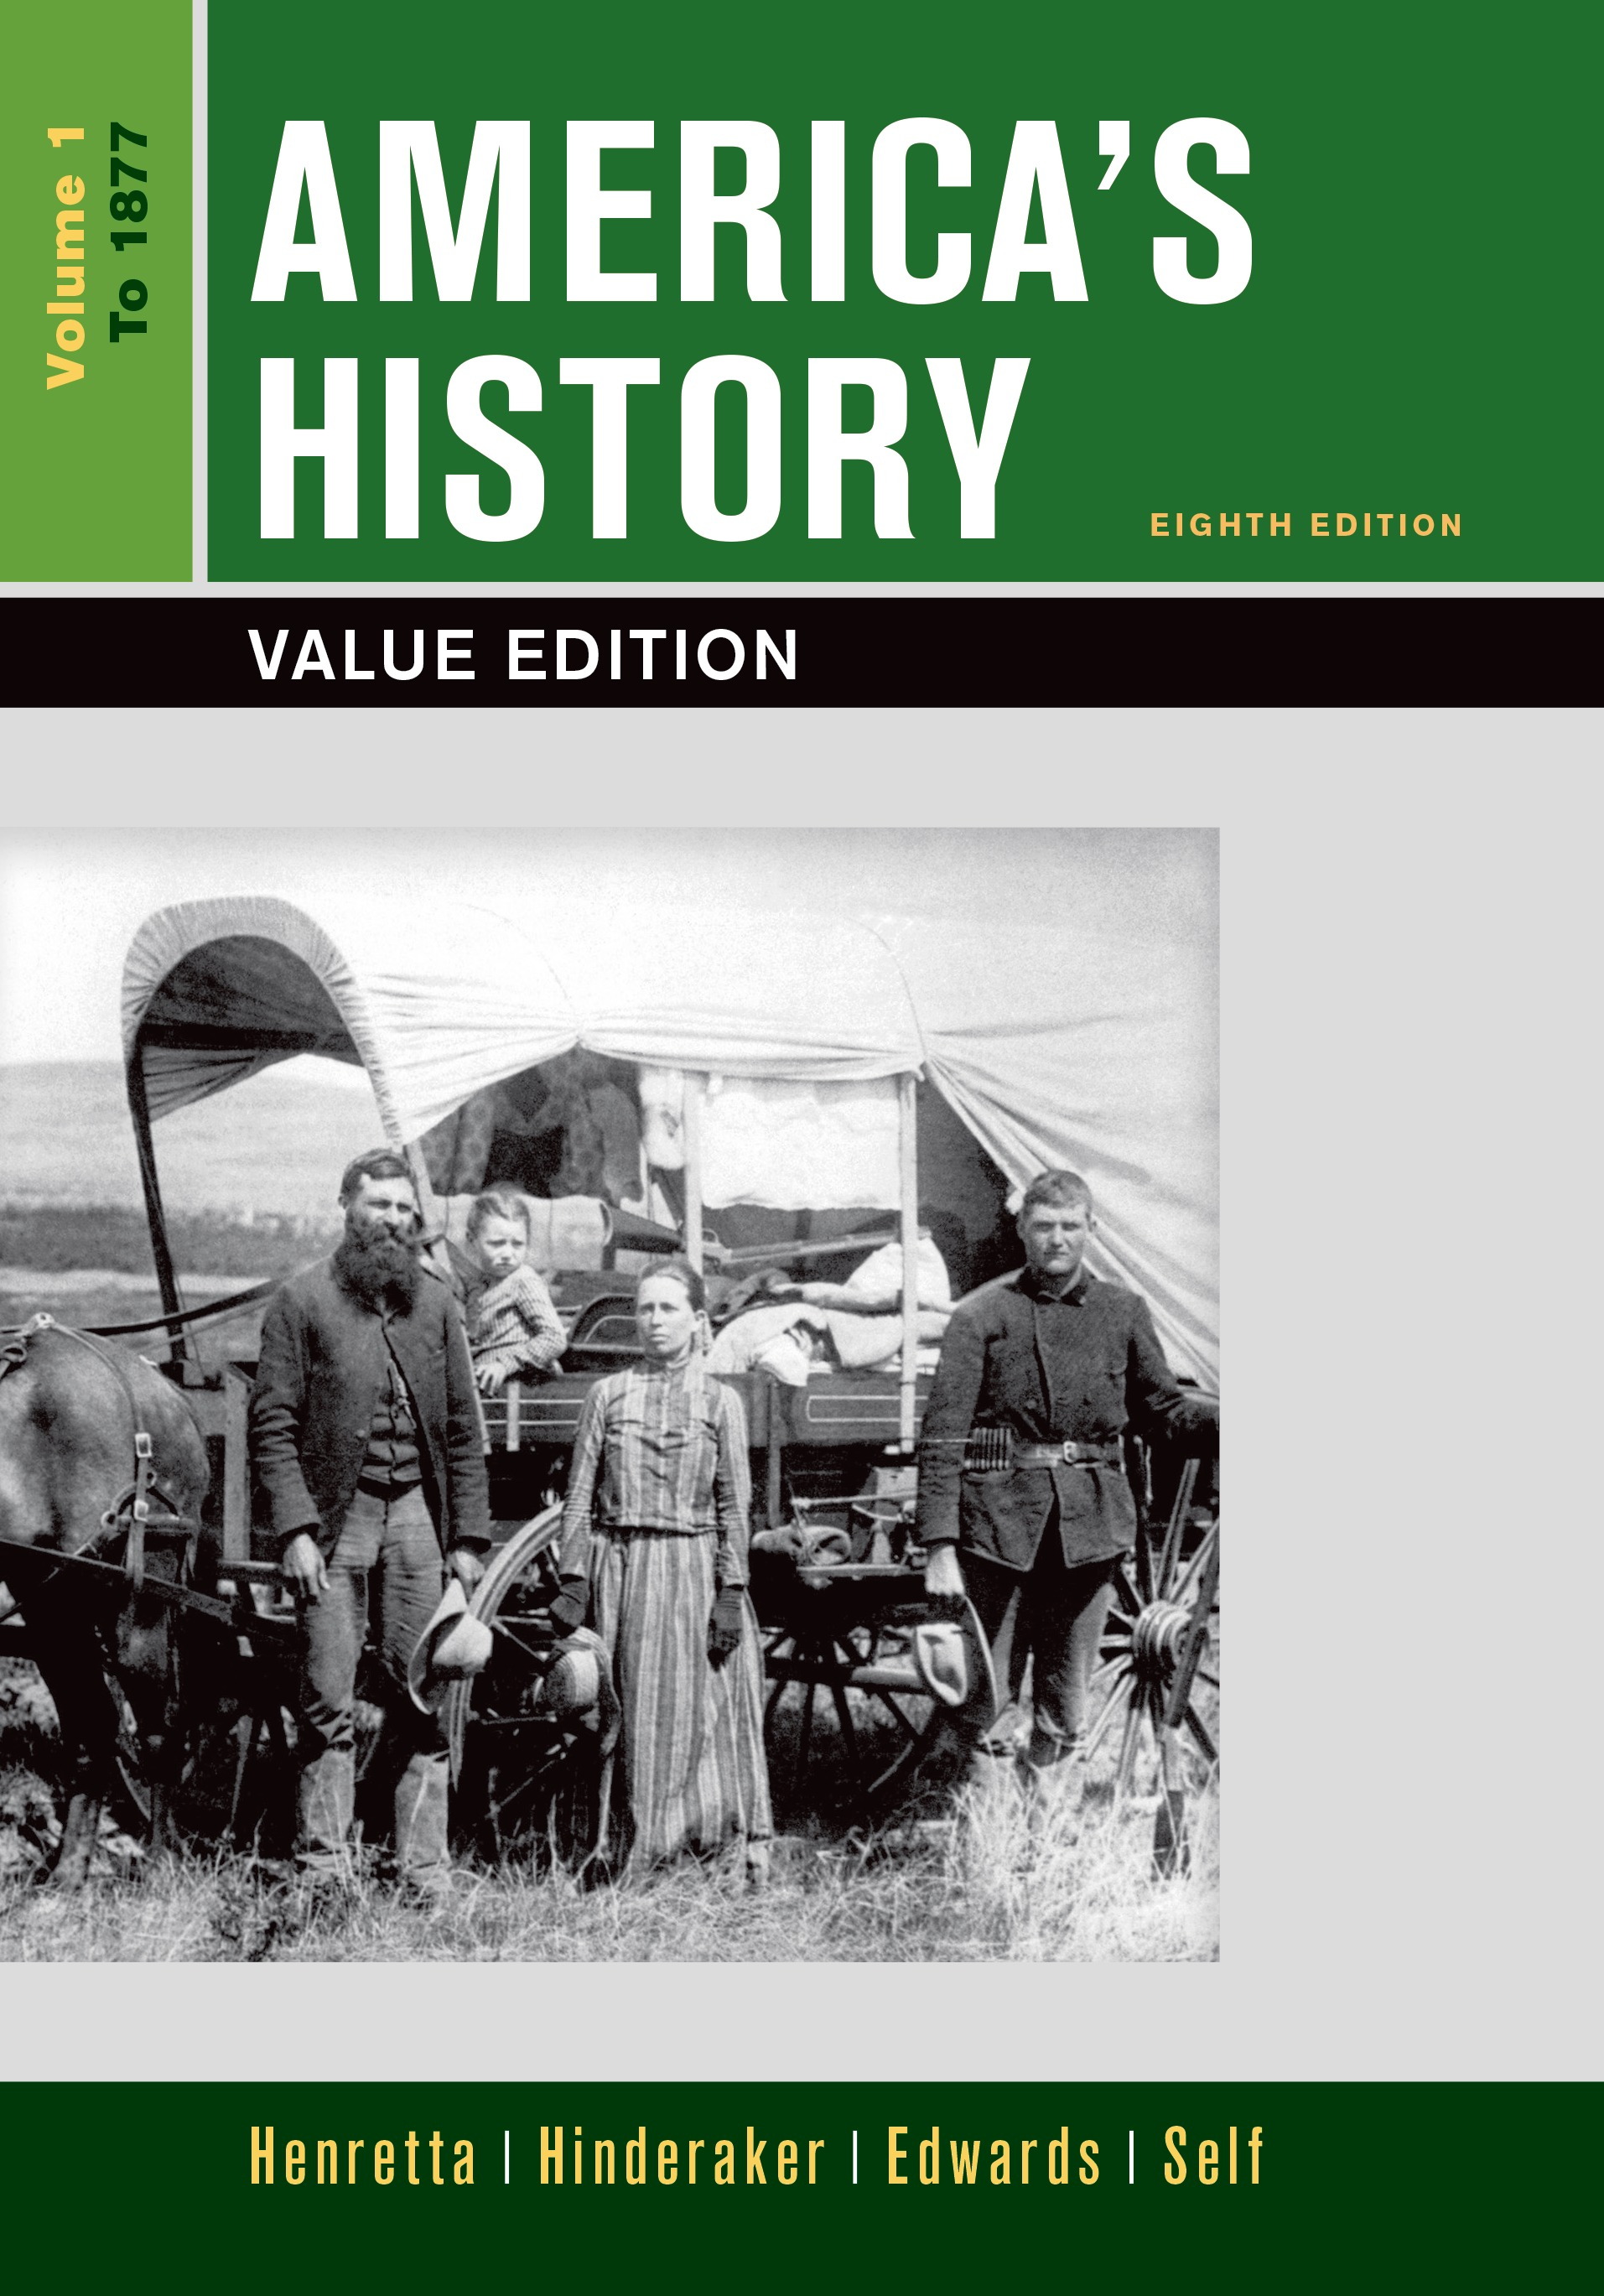 america a concise history Download and read america a concise history 5th edition america a concise history 5th edition in undergoing this life, many people always try to do and get the best.